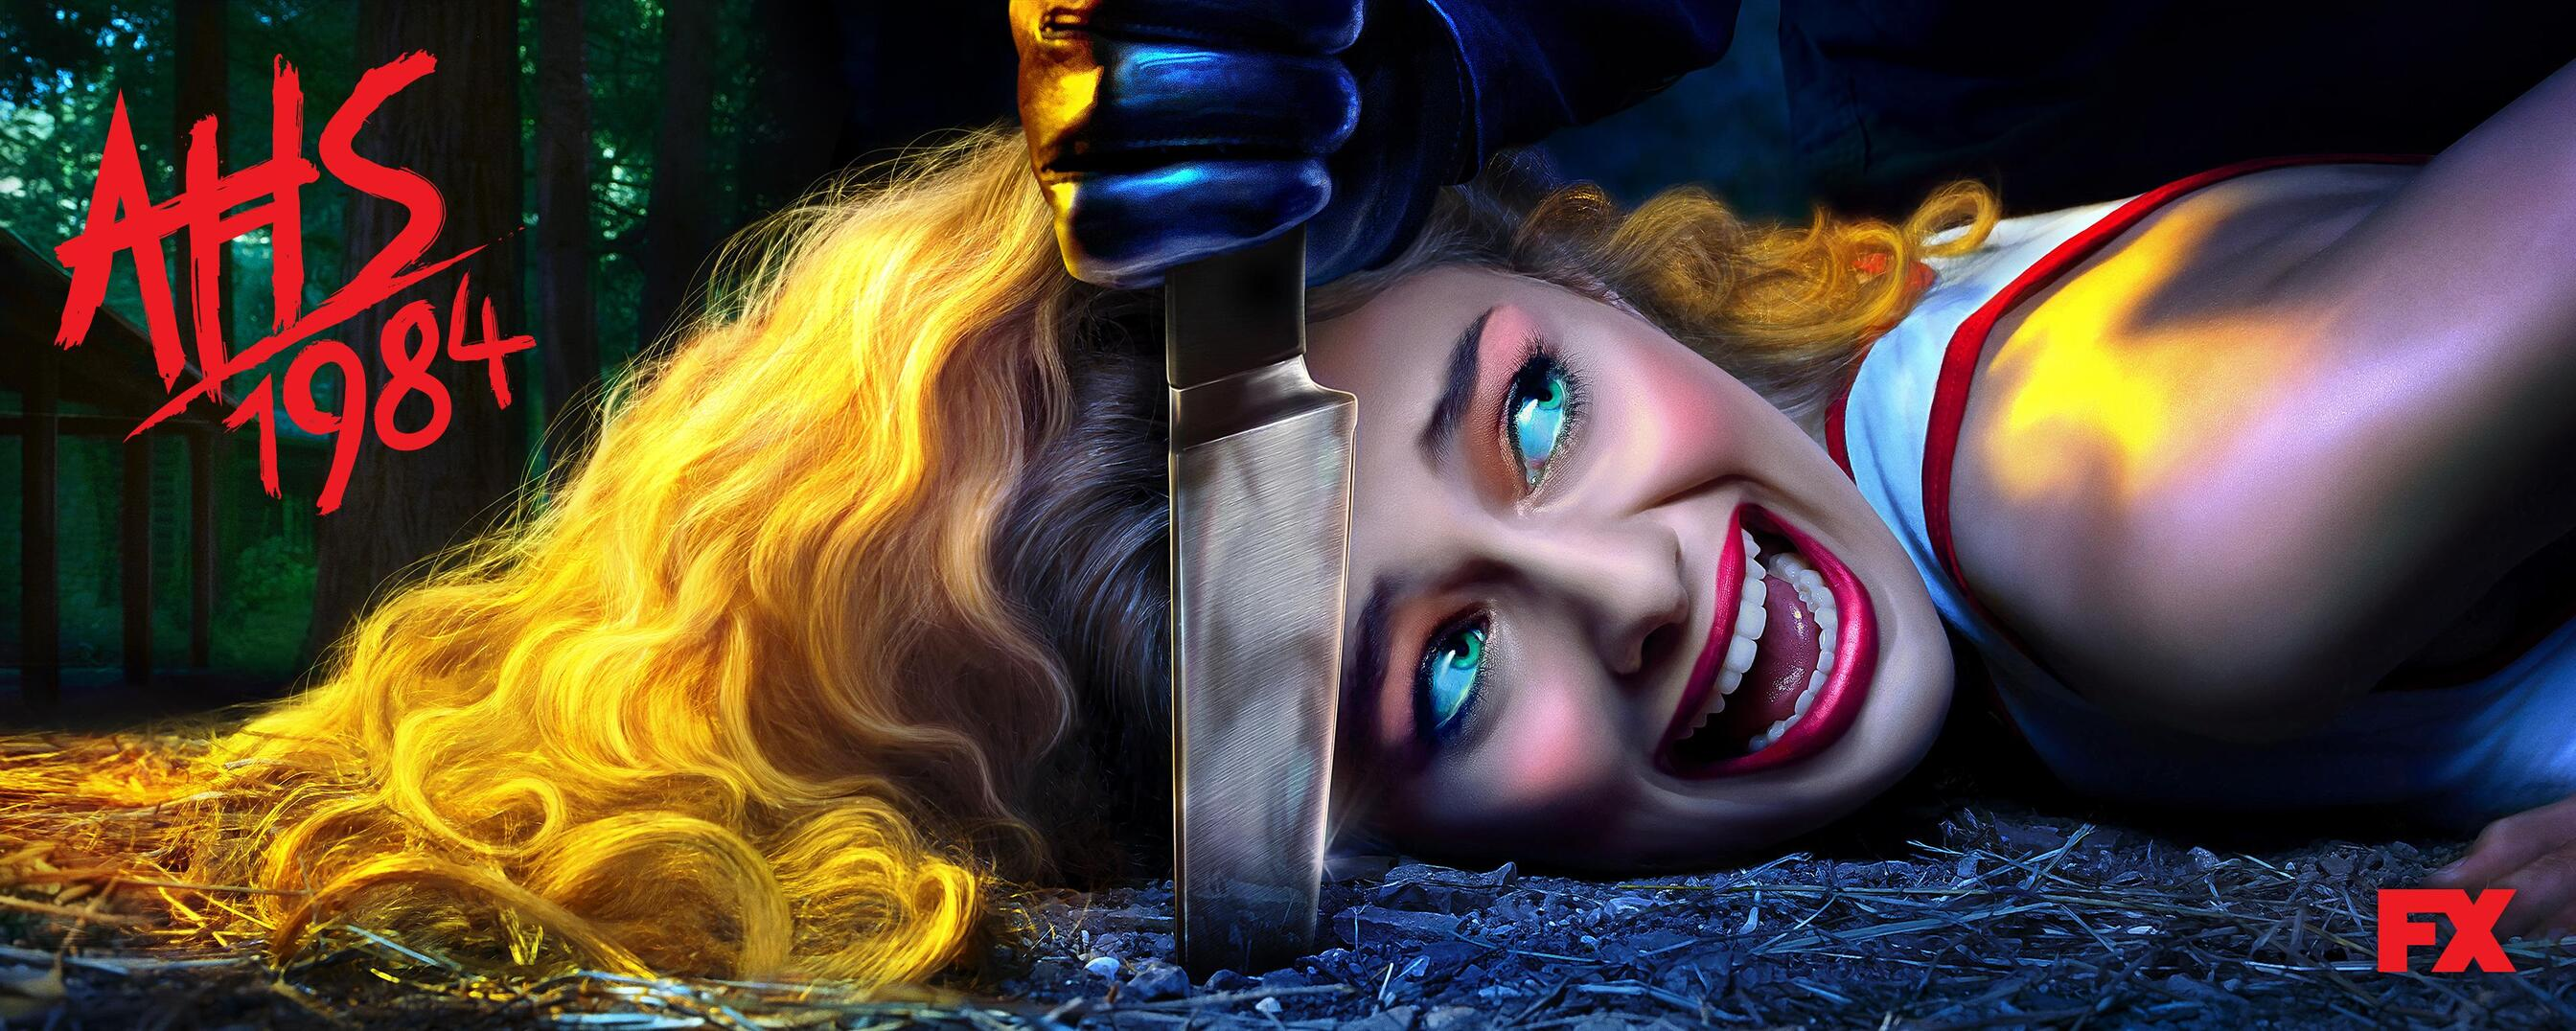 Watch American Horror Story Tv Show Streaming Online Fx